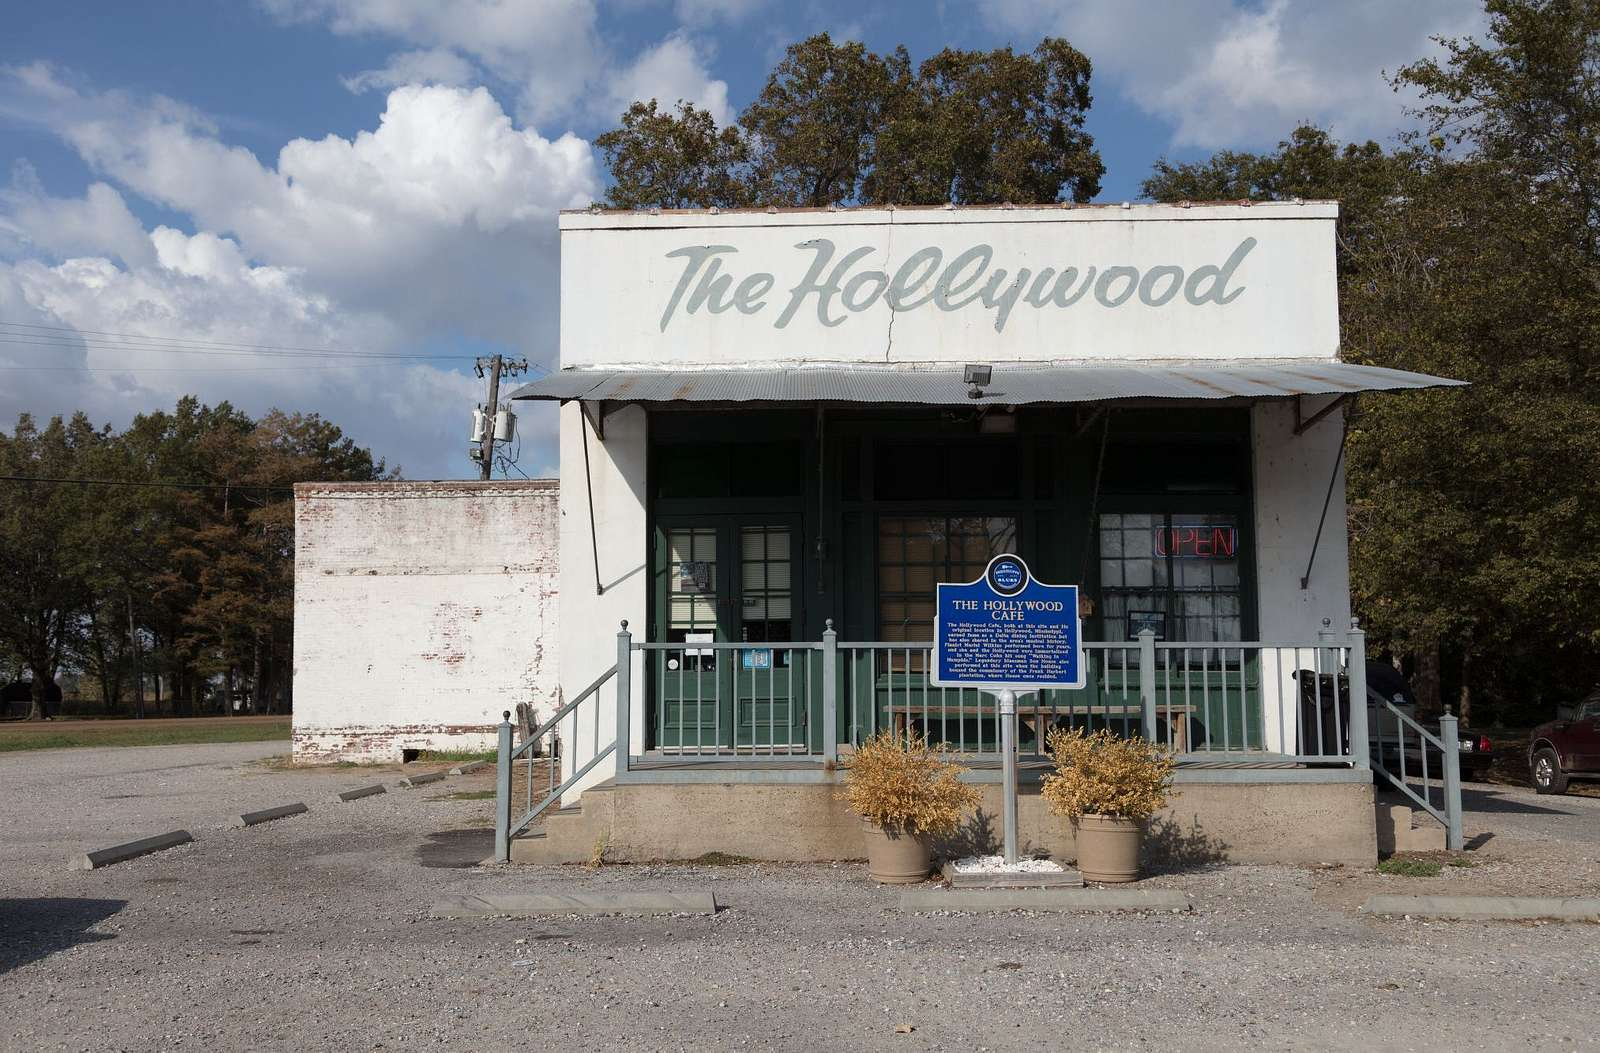 The Hollywood Cafe in Robinsonville, Mississippi, and its sister restaurant of the same name down the country roads of the area in tiny Hollywood, itself, are northern Mississippi institutions, both for their home cooking and for their music